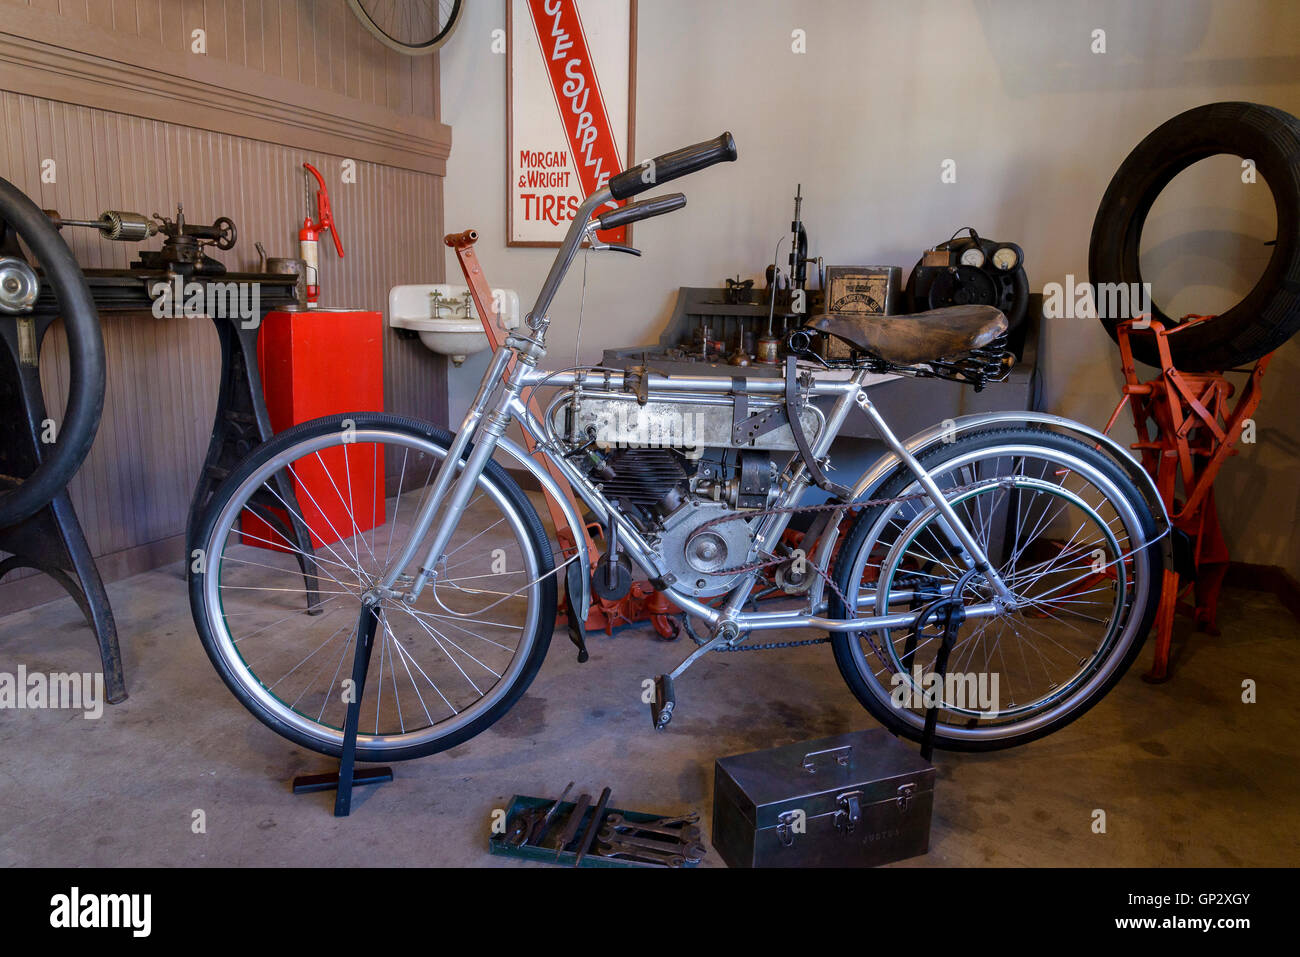 Antique gas powered bicycle, Burnaby Village Museum, Burnaby, British Columbia, Canada - Stock Image